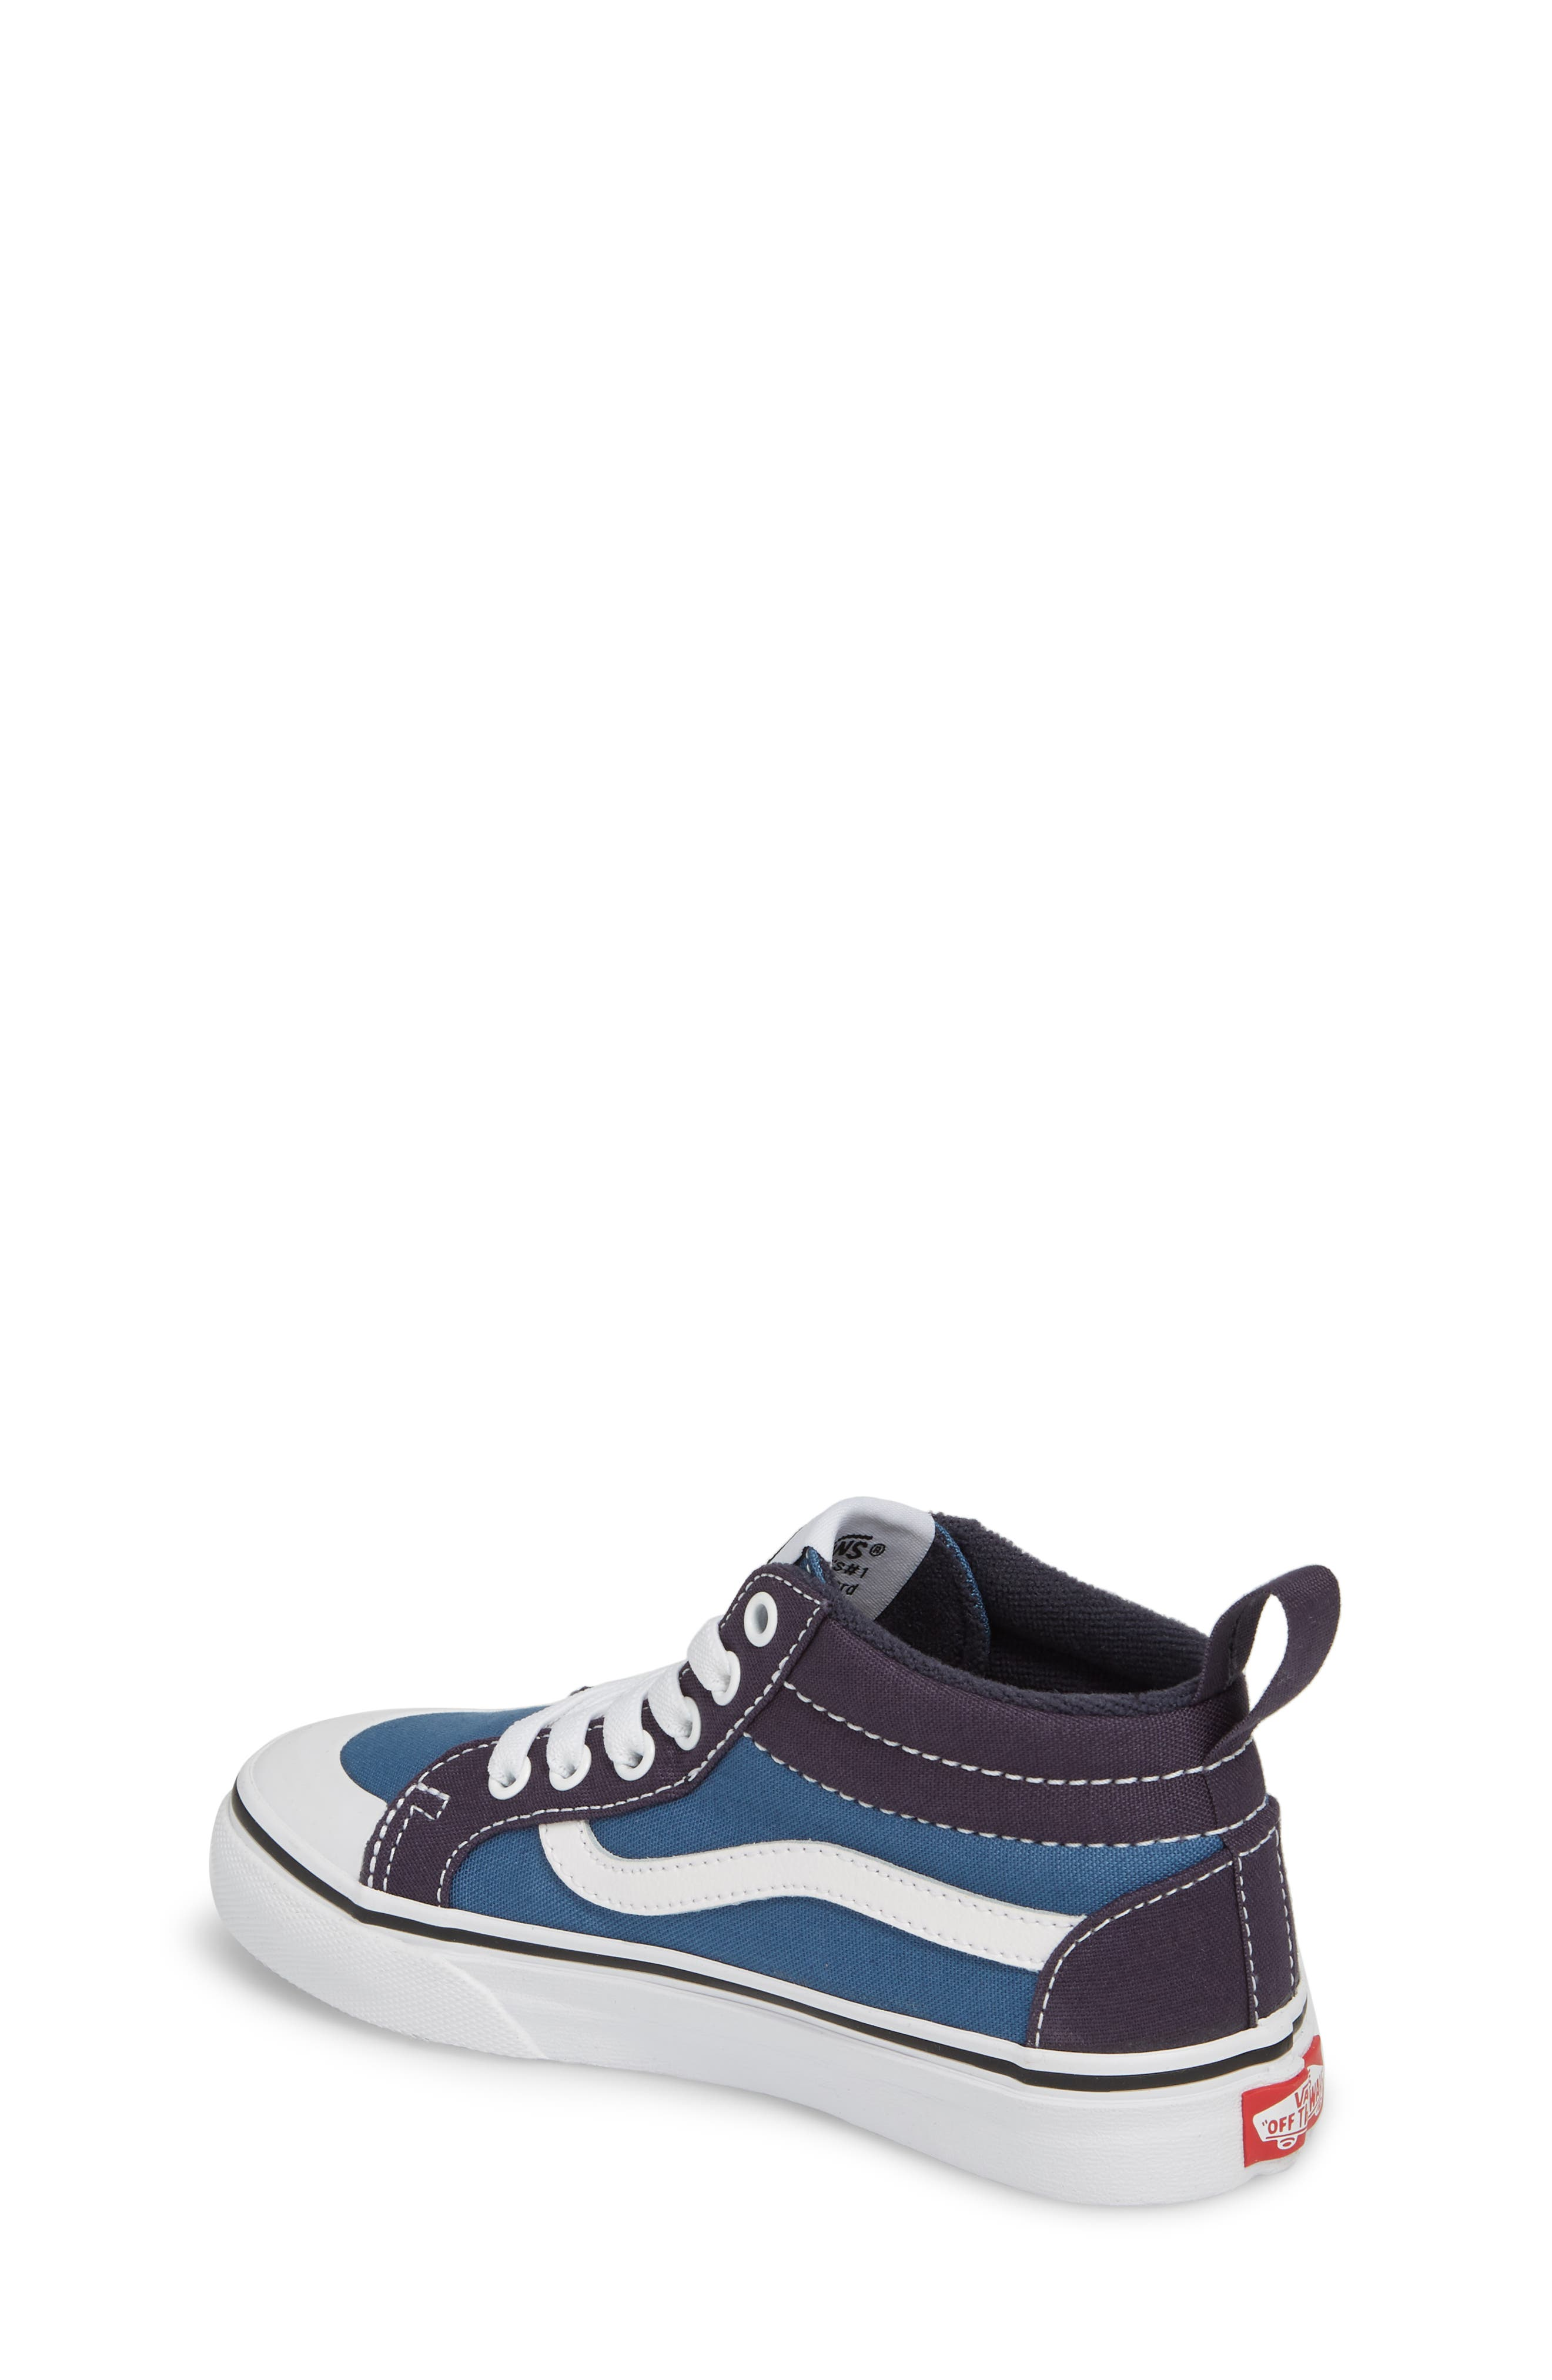 Racer Mid Elastic Lace Sneaker,                             Alternate thumbnail 11, color,